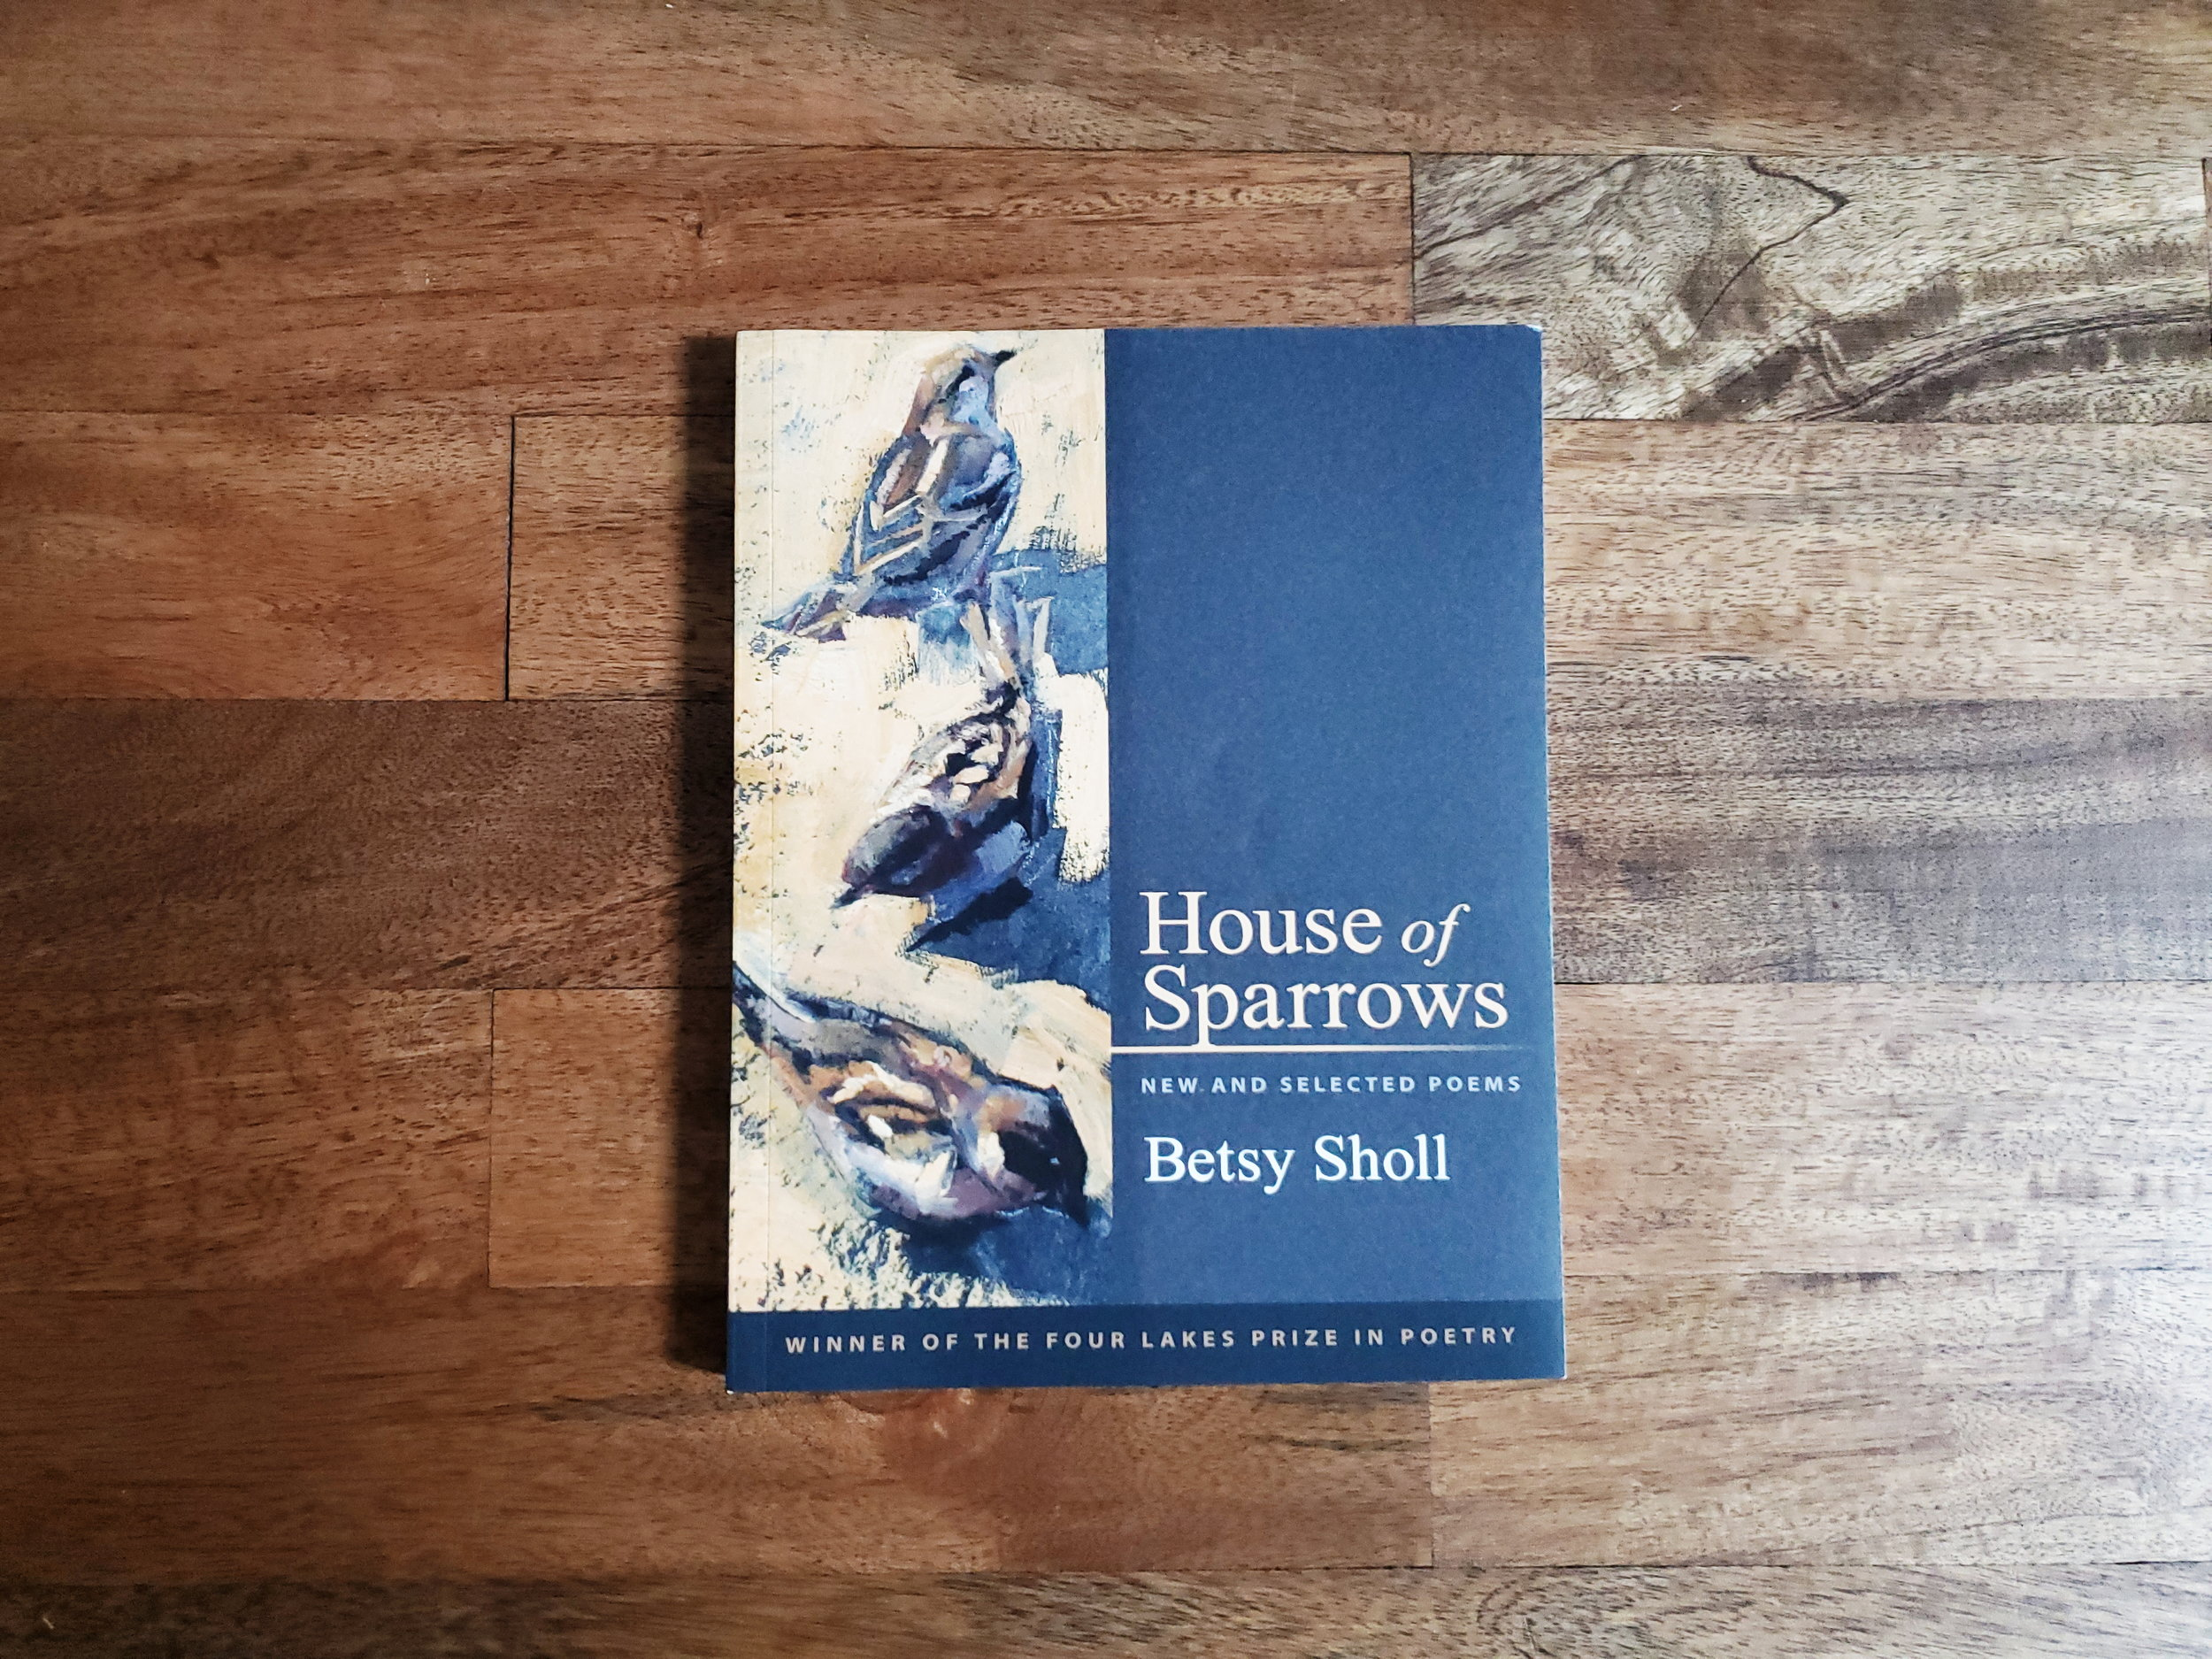 House of Sparrows by Betsy Sholl